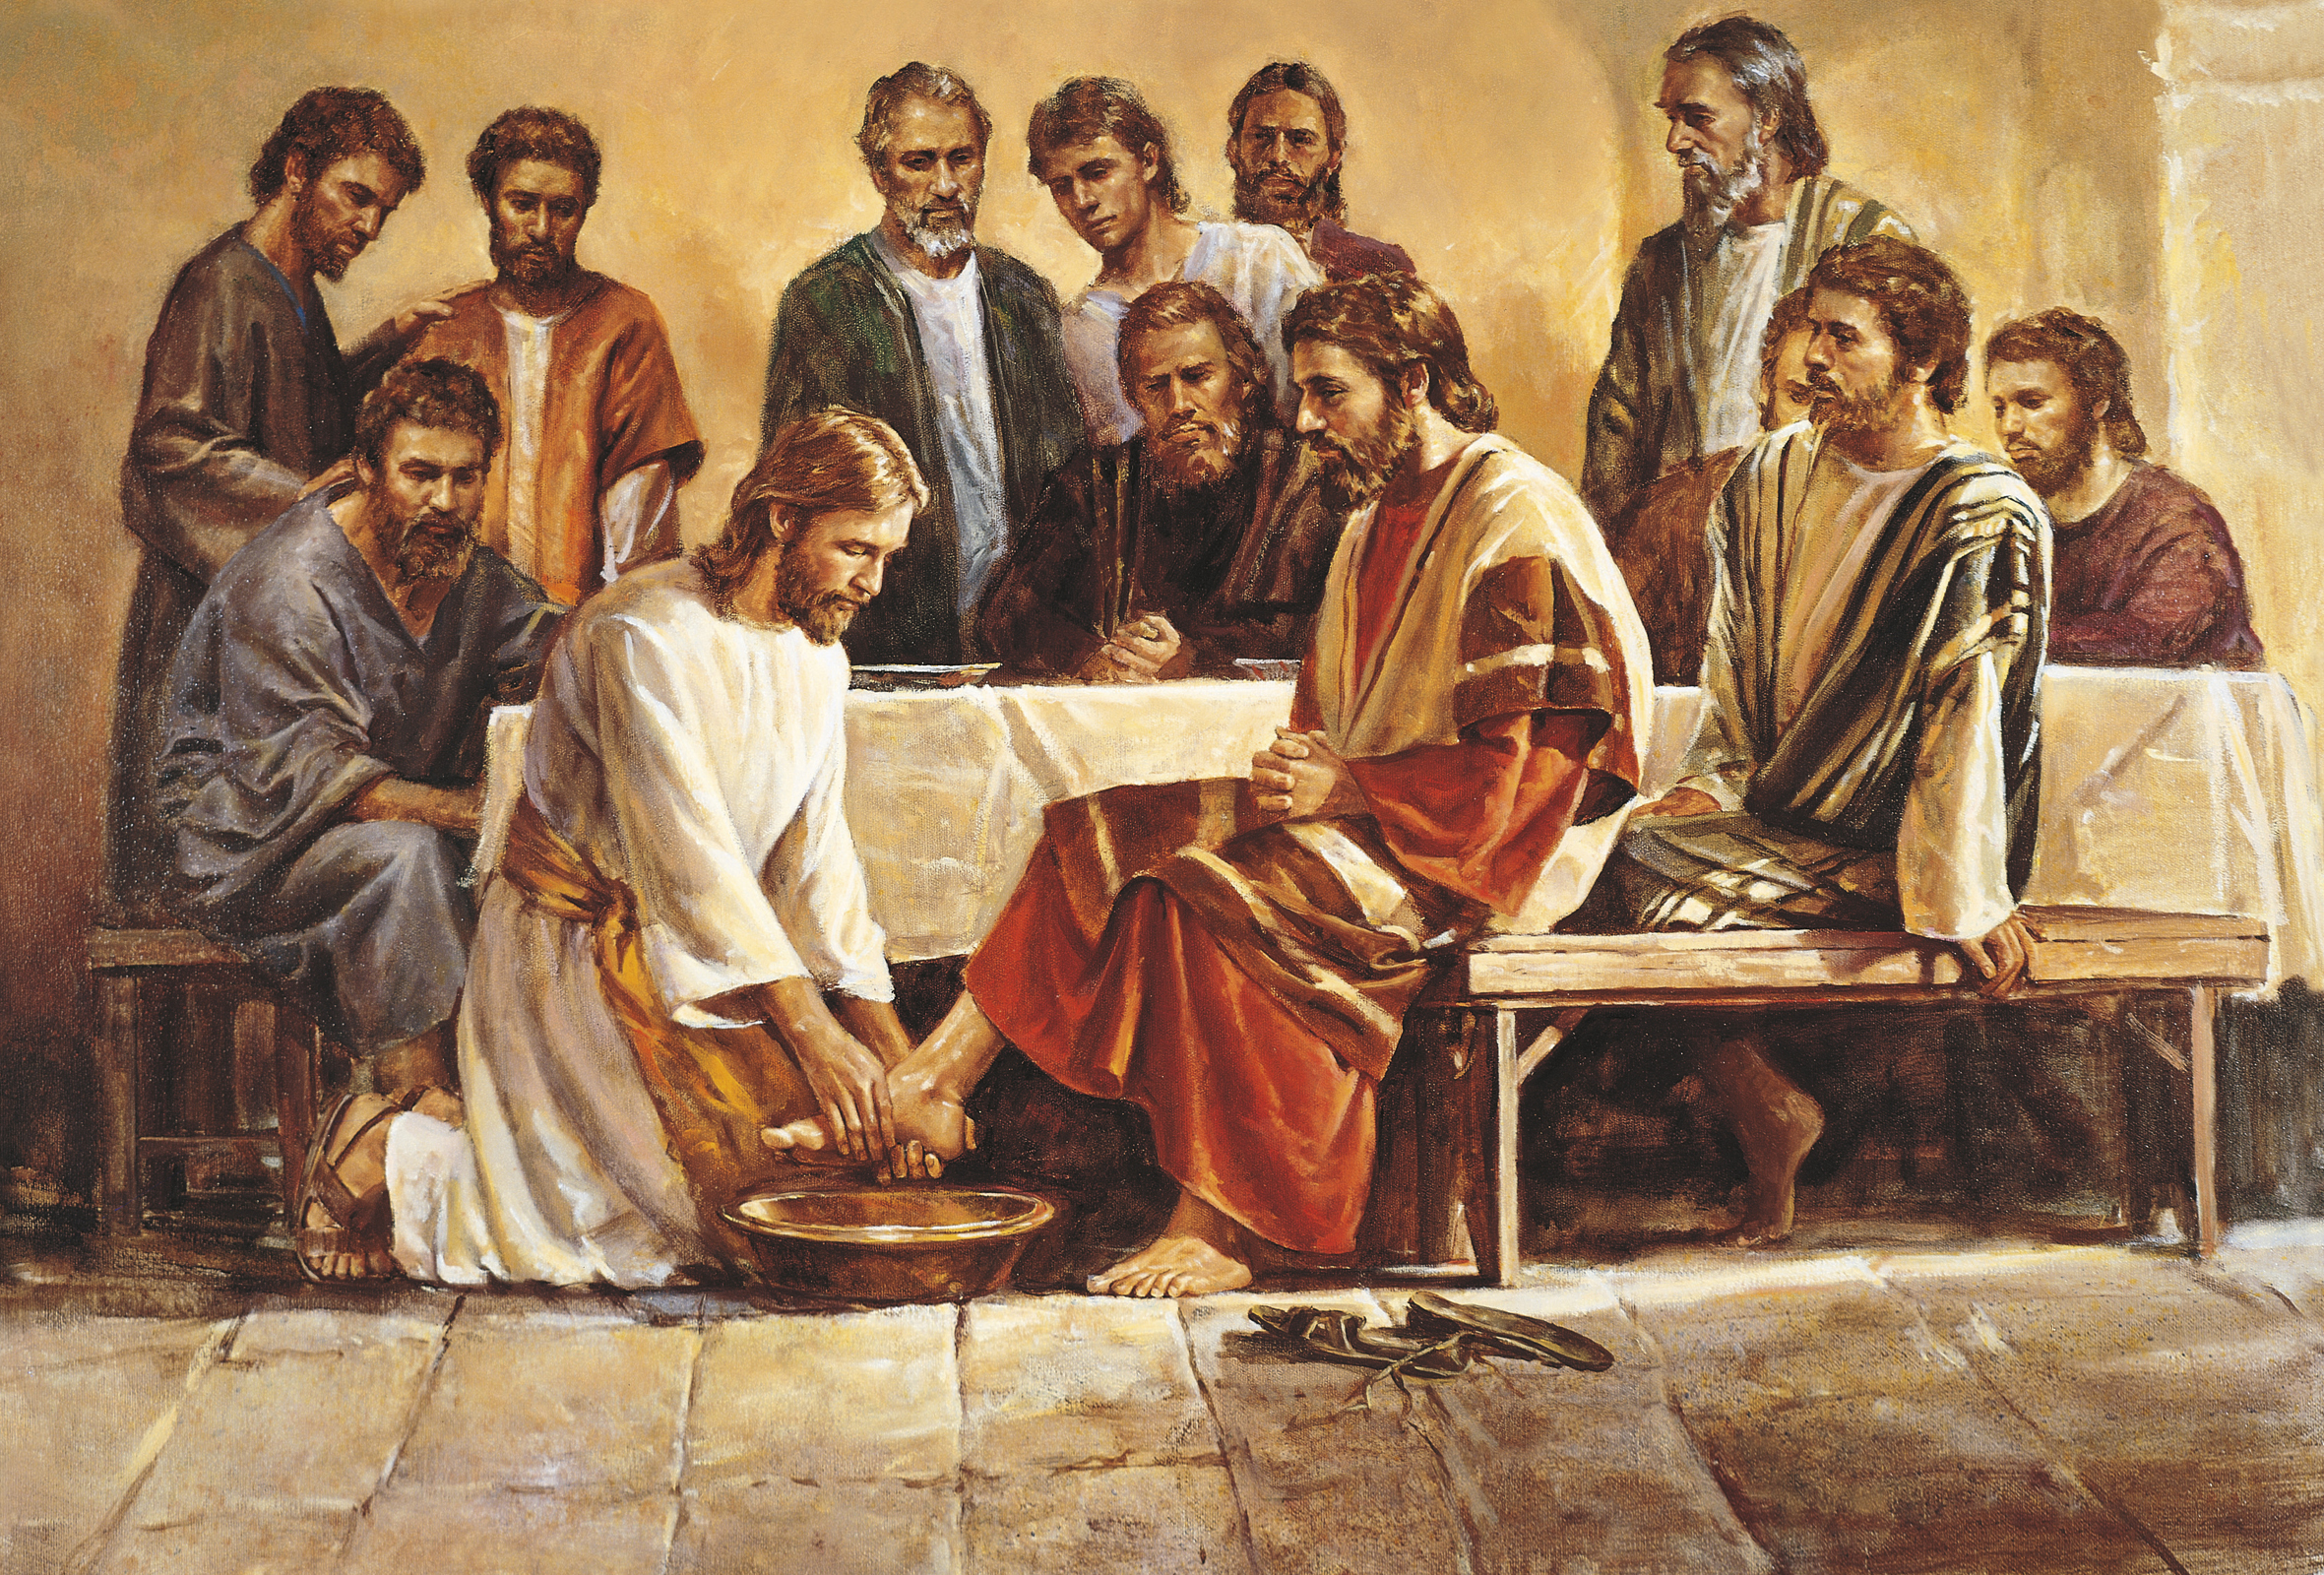 jesus-washing-apostles-feet-39588-wallpaper.jpg